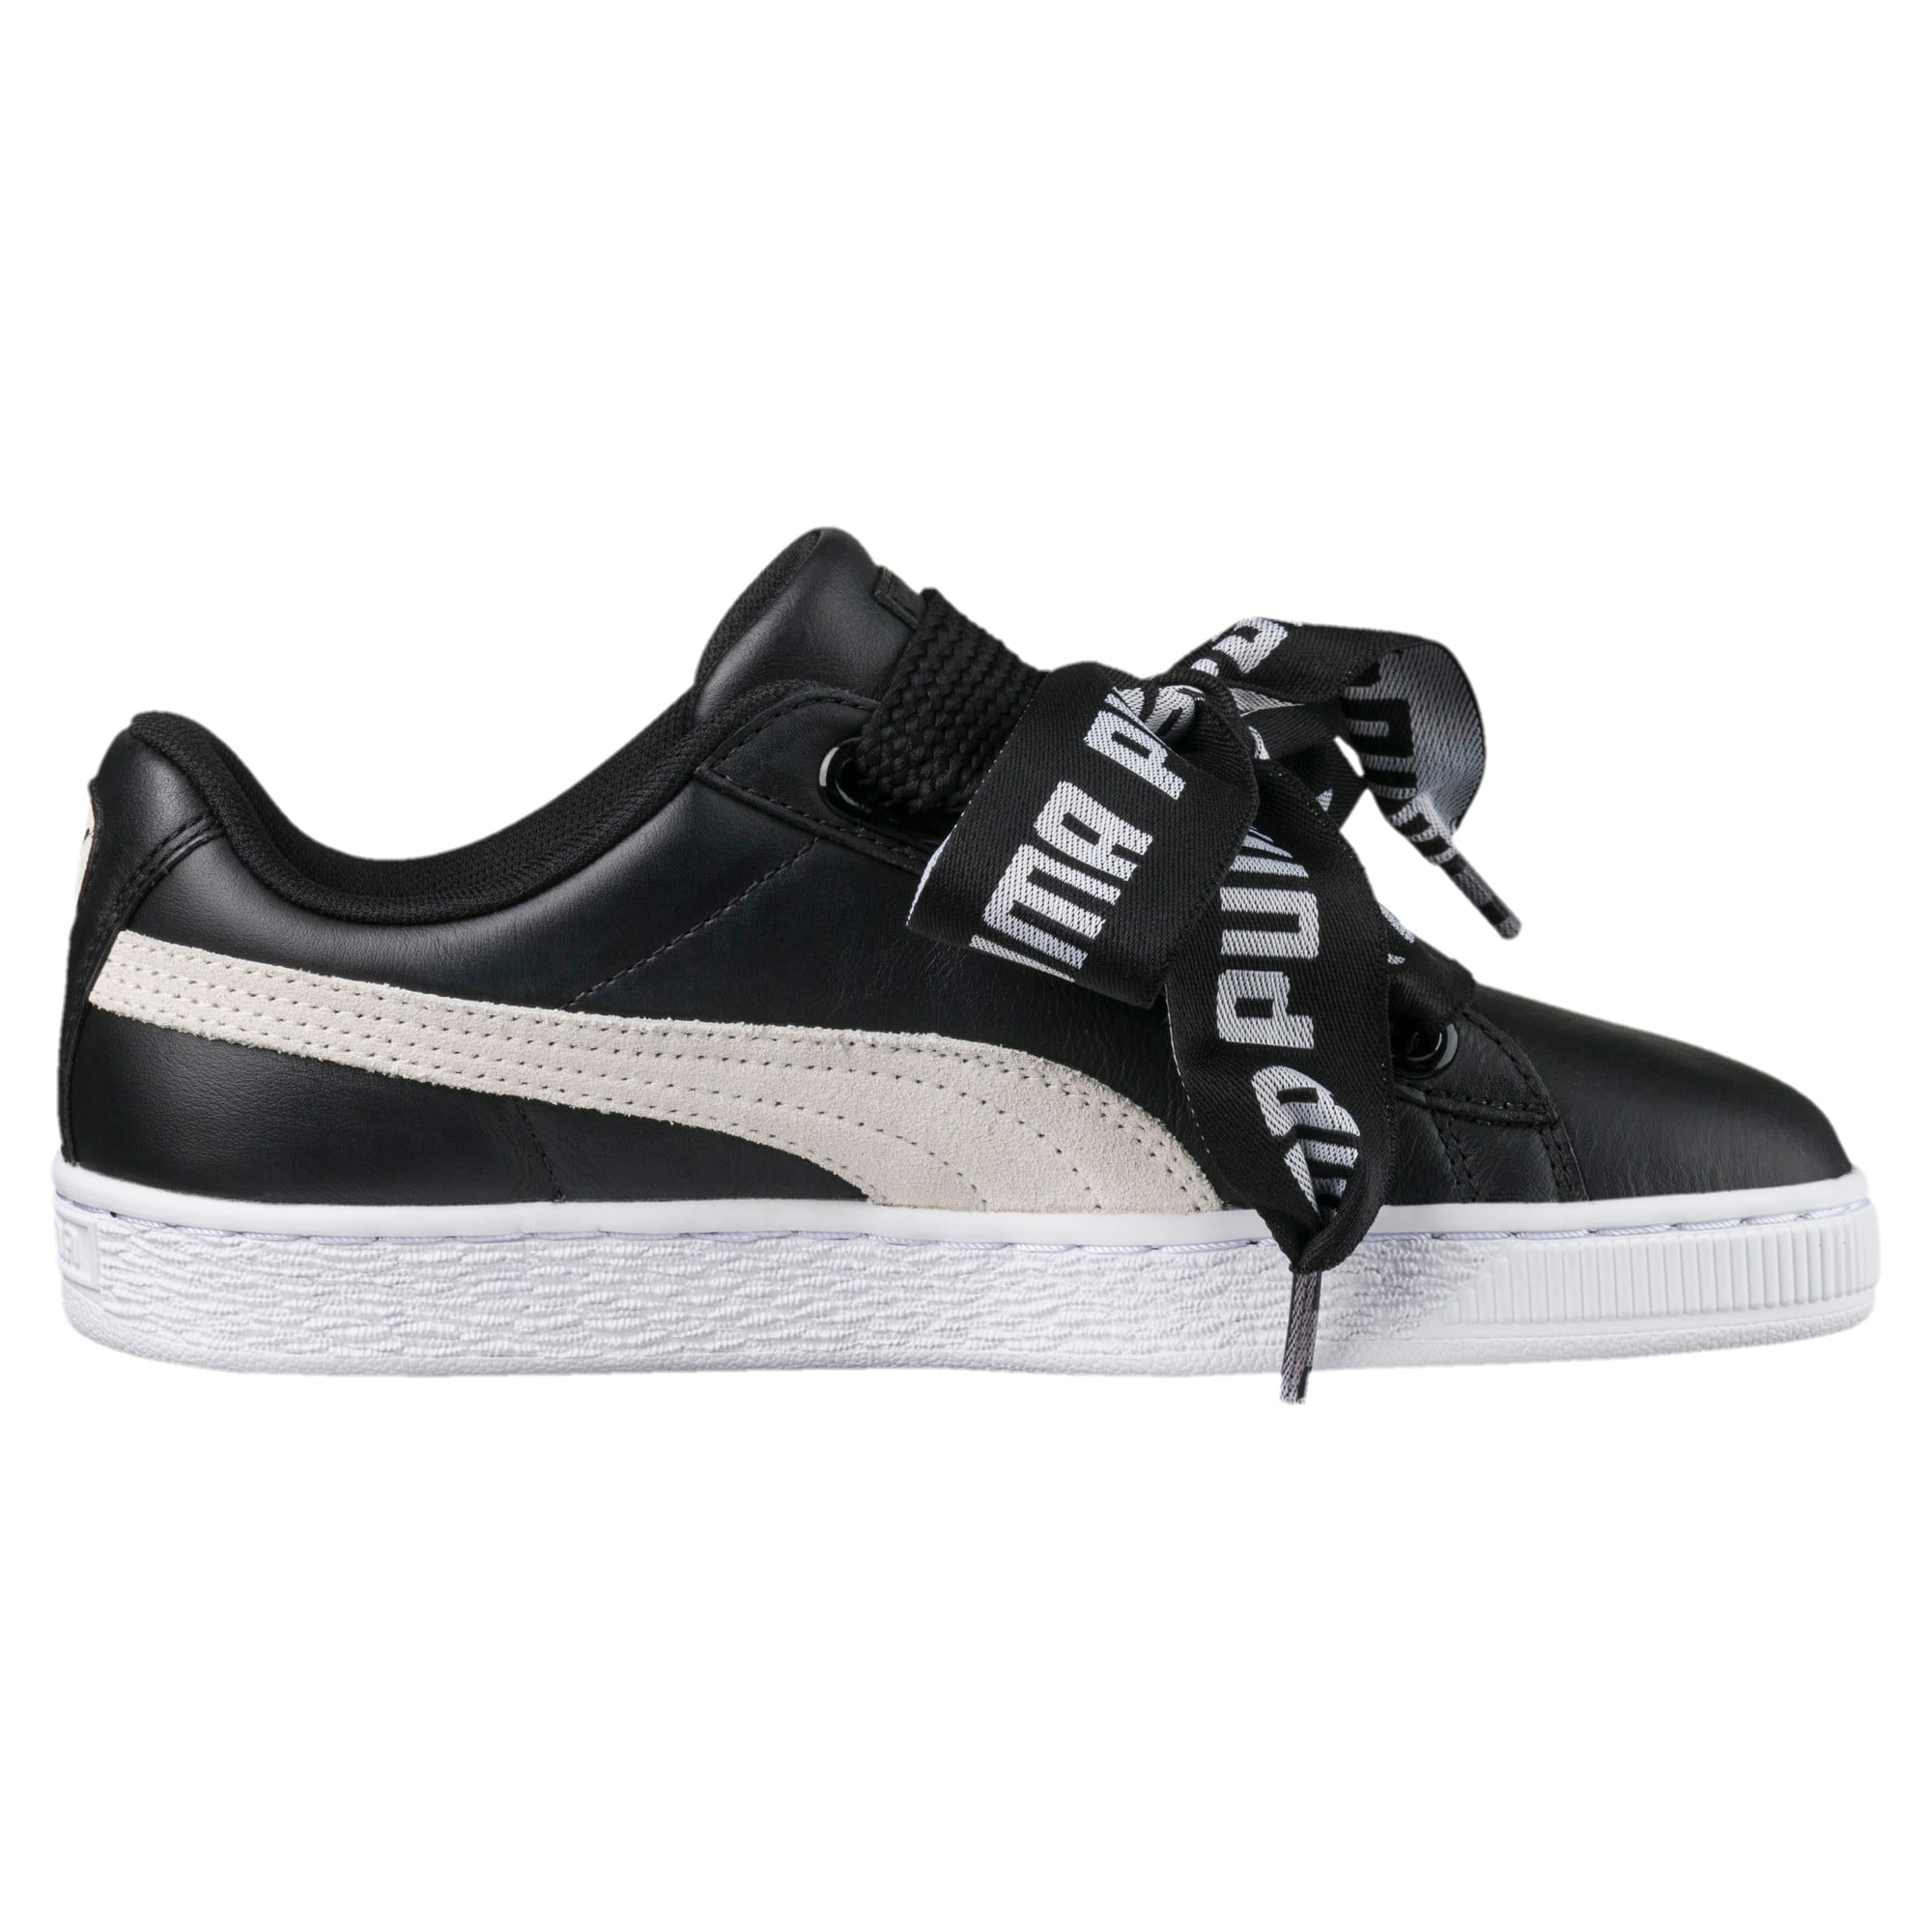 Details about Puma Womens Suede Heart Street 2 WNs Low Top Sneakers Black, 5.5 UK